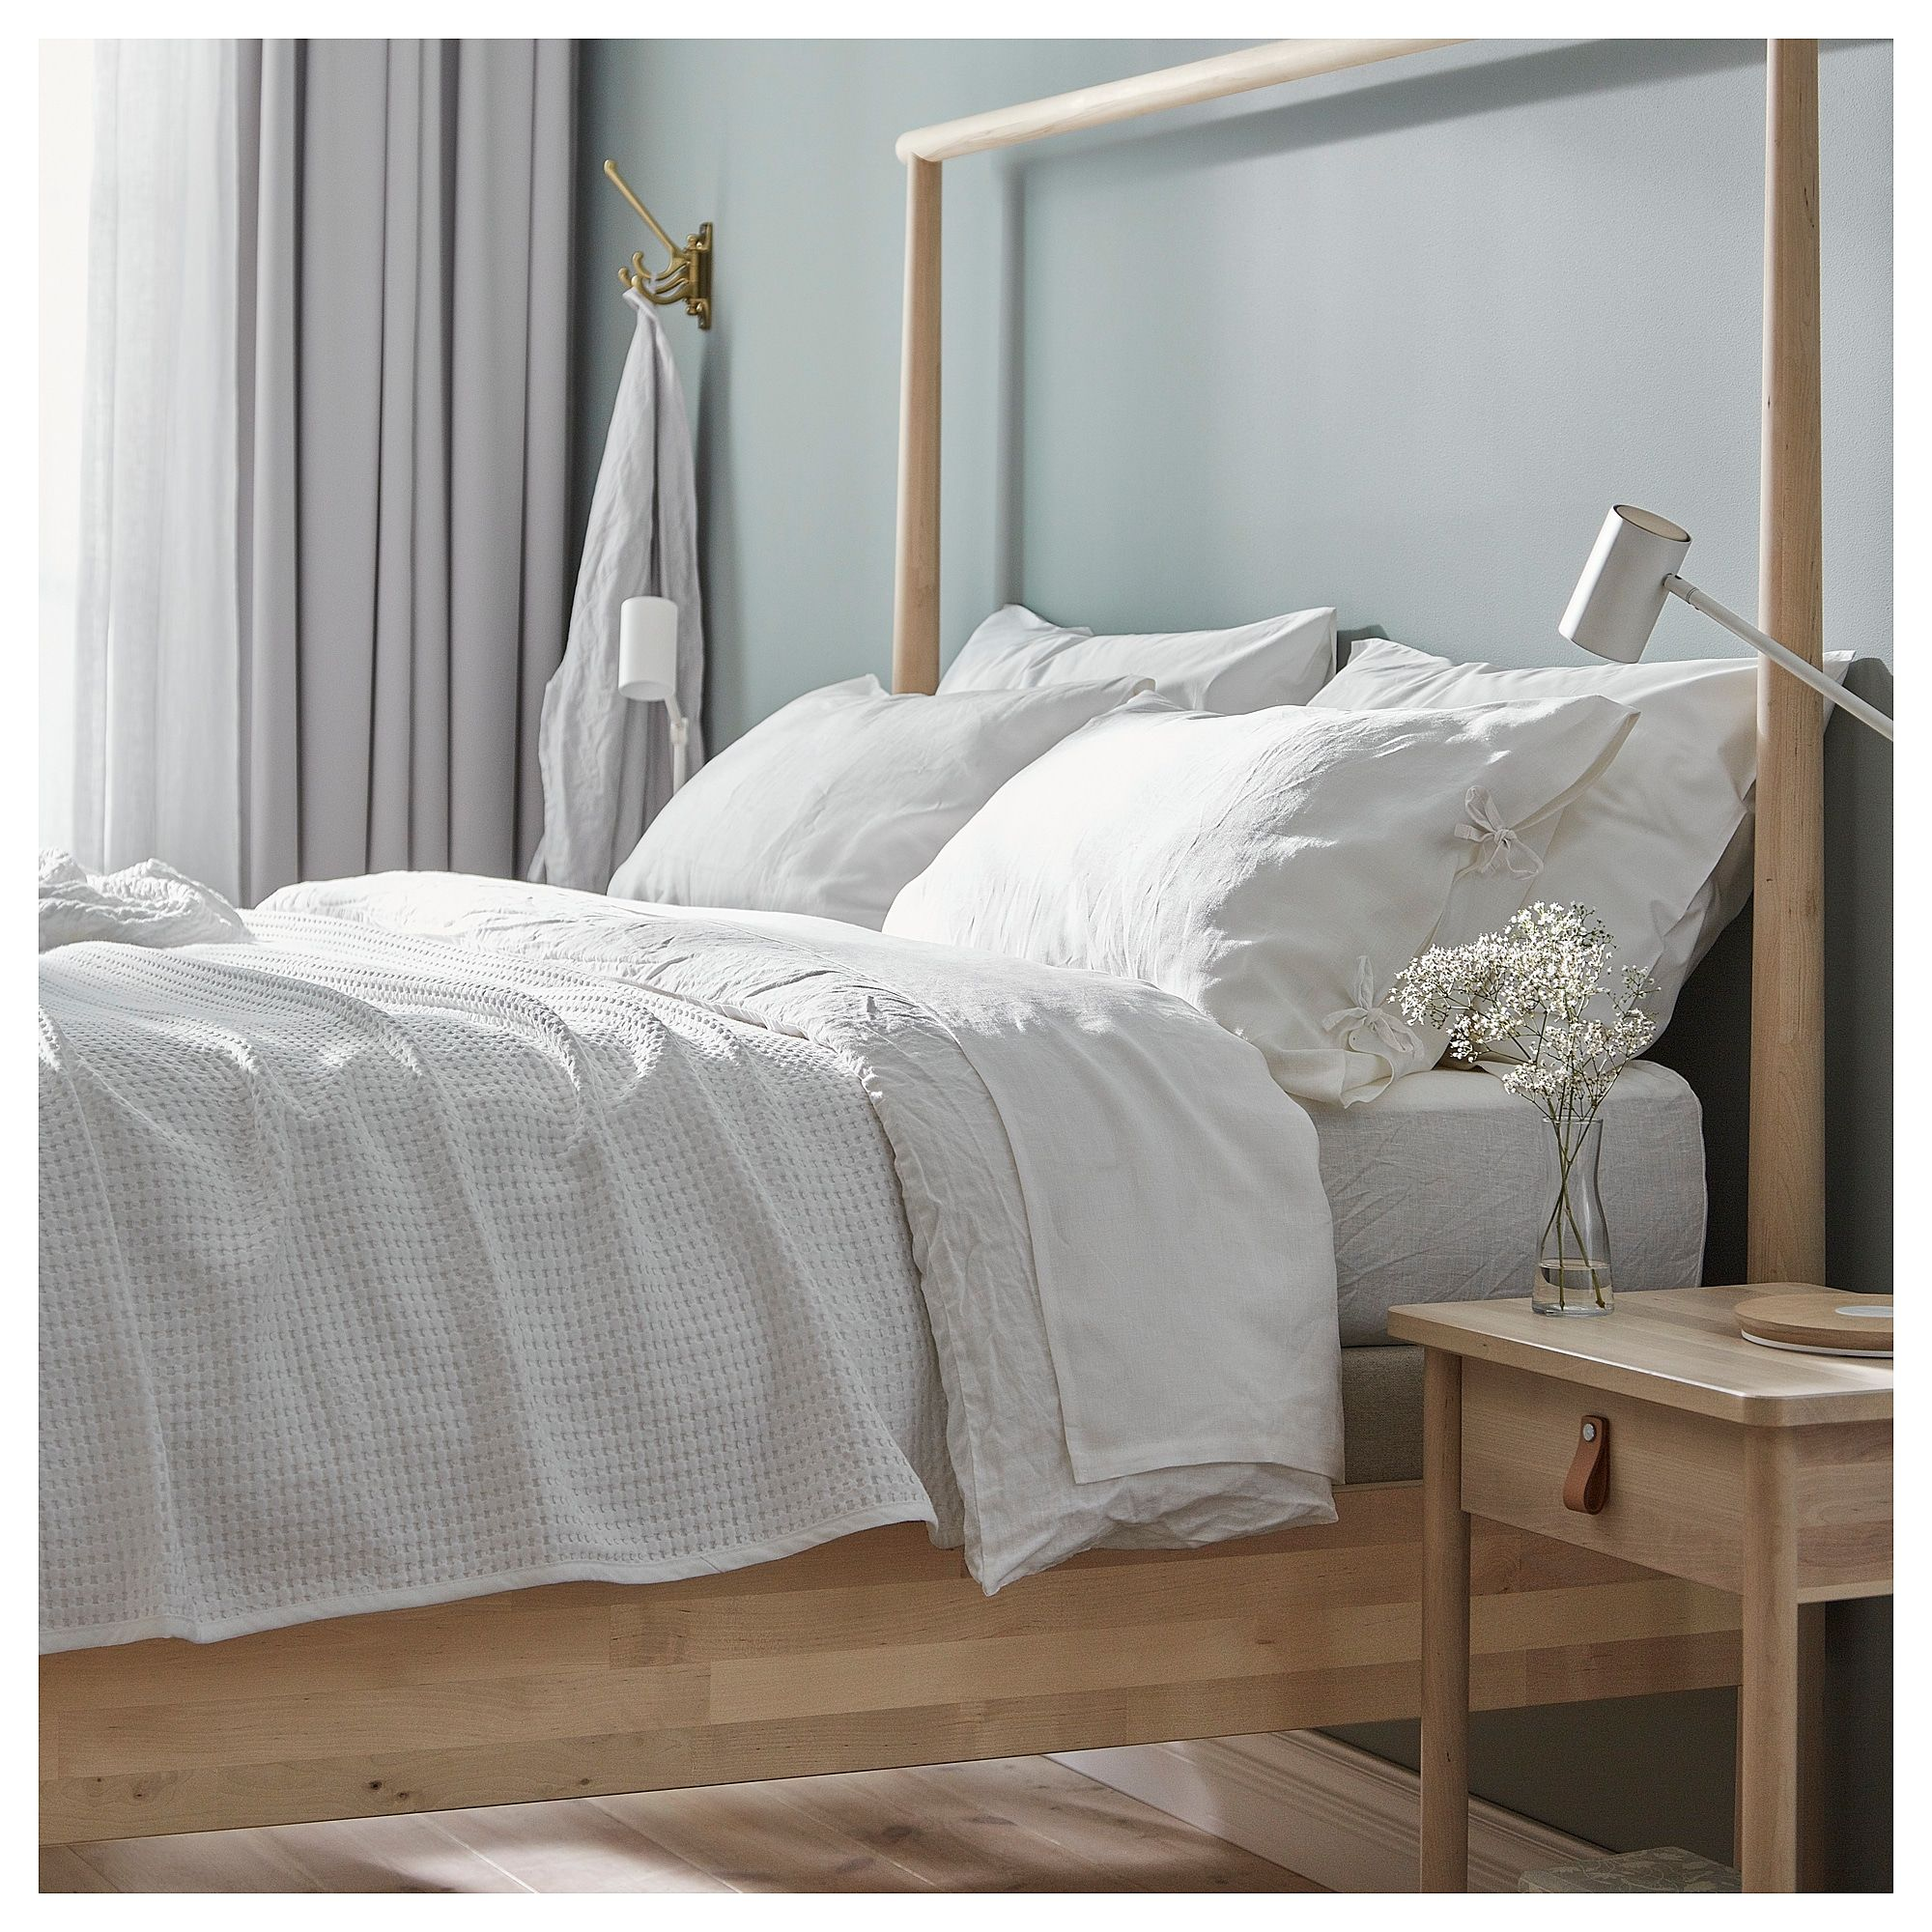 Ikea Puderviva Duvet Cover And Pillowcase S White